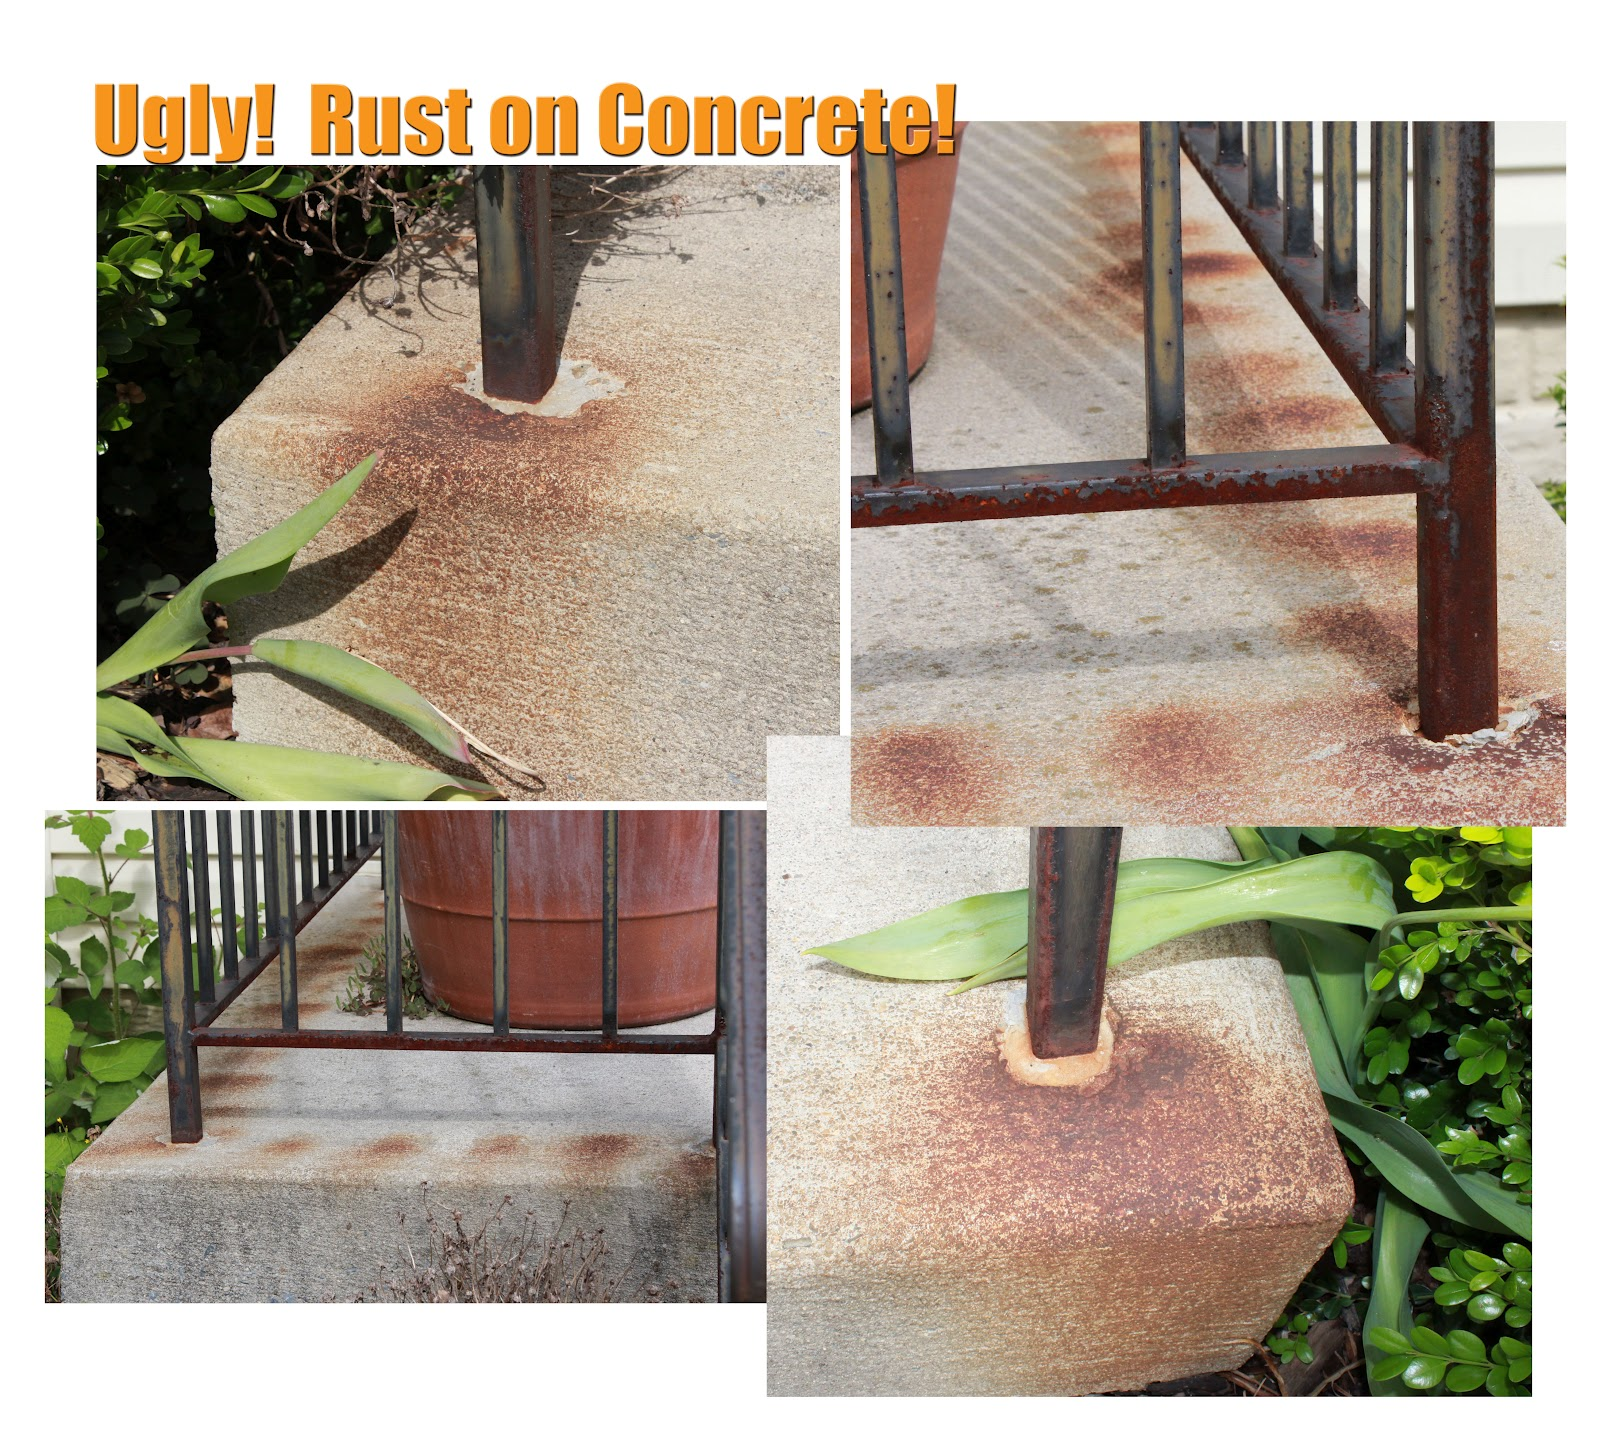 Remodelando la Casa: Get rid of Rust on Concrete!